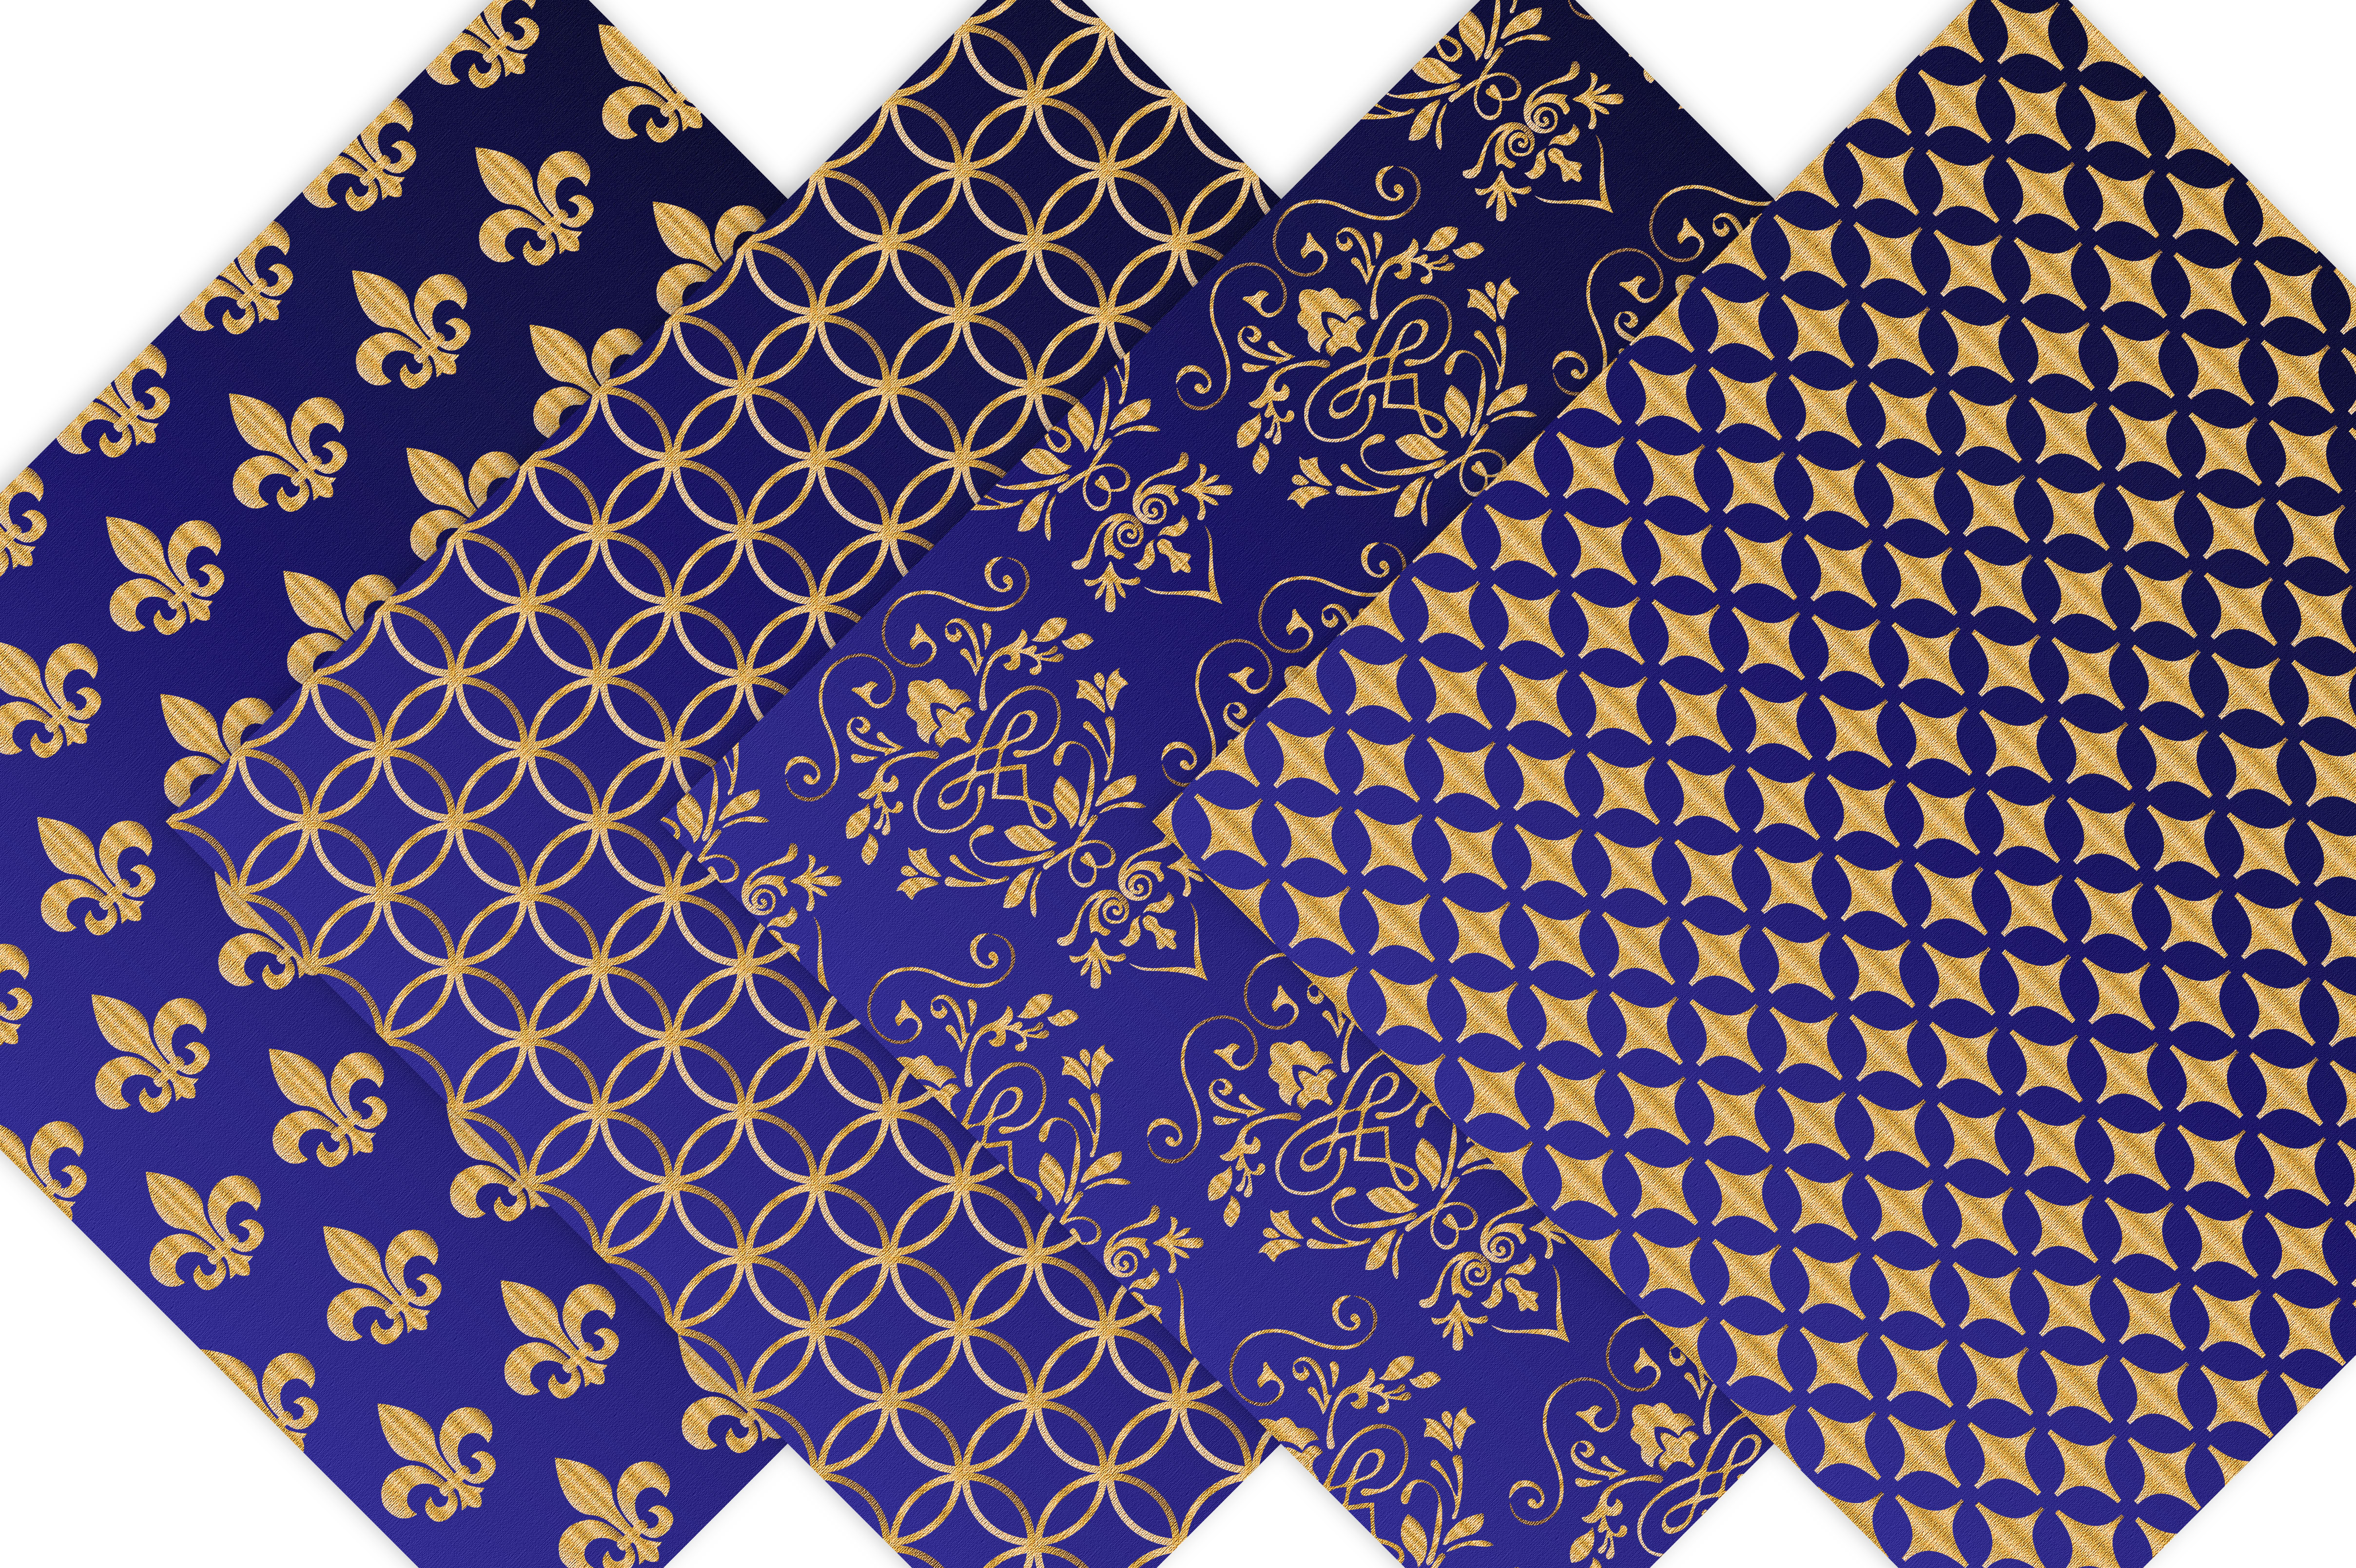 Royal Blue and Gold Digital Backgrounds example image 5